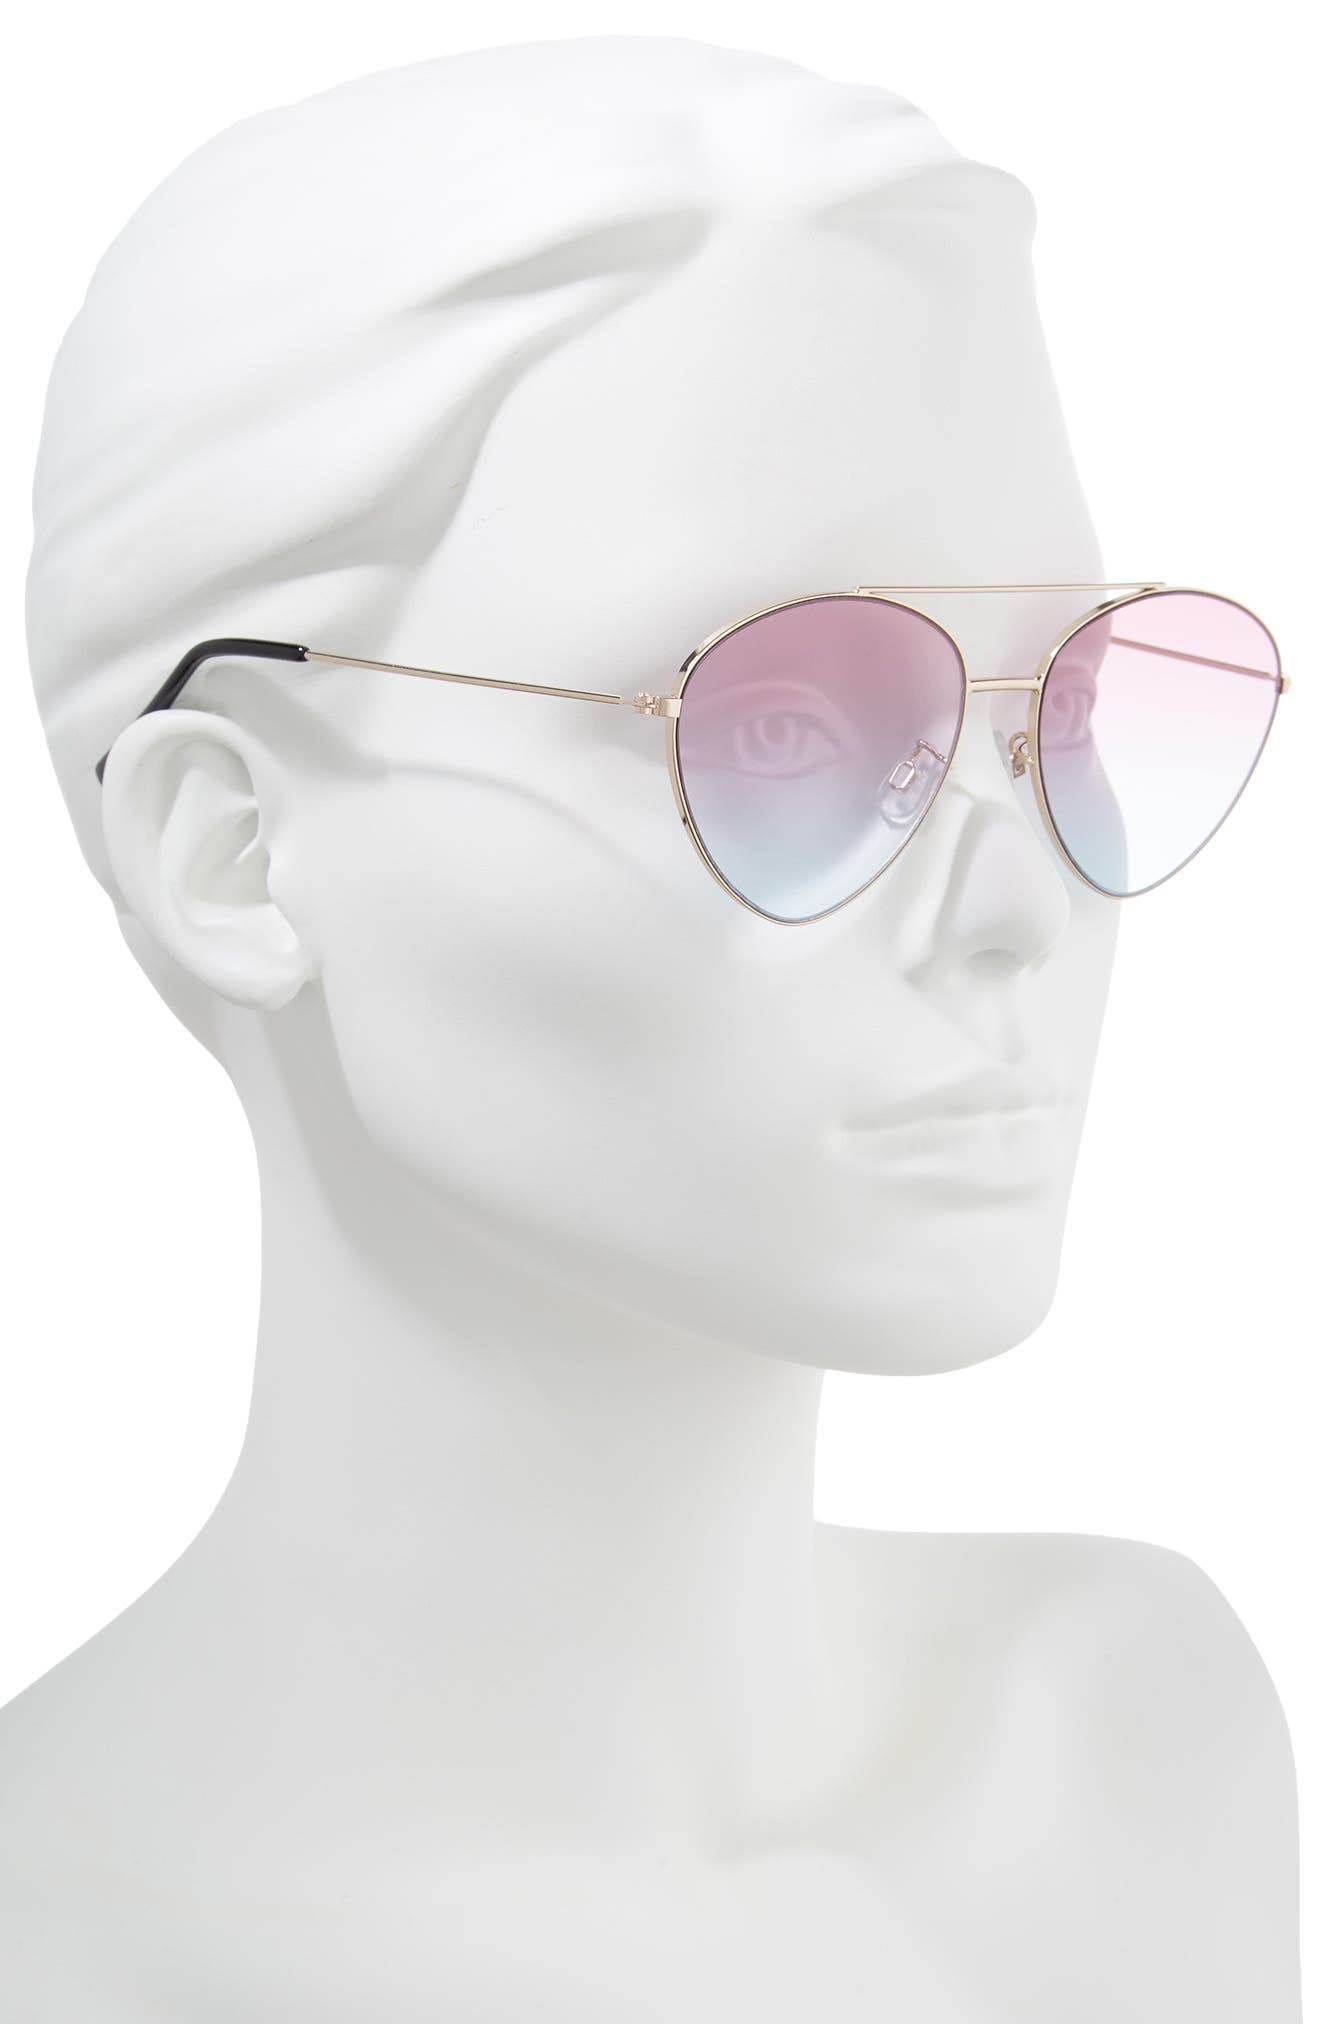 56mm Gradient Aviator Sunglasses,                             Alternate thumbnail 2, color,                             Gold/ Pink/ Blue